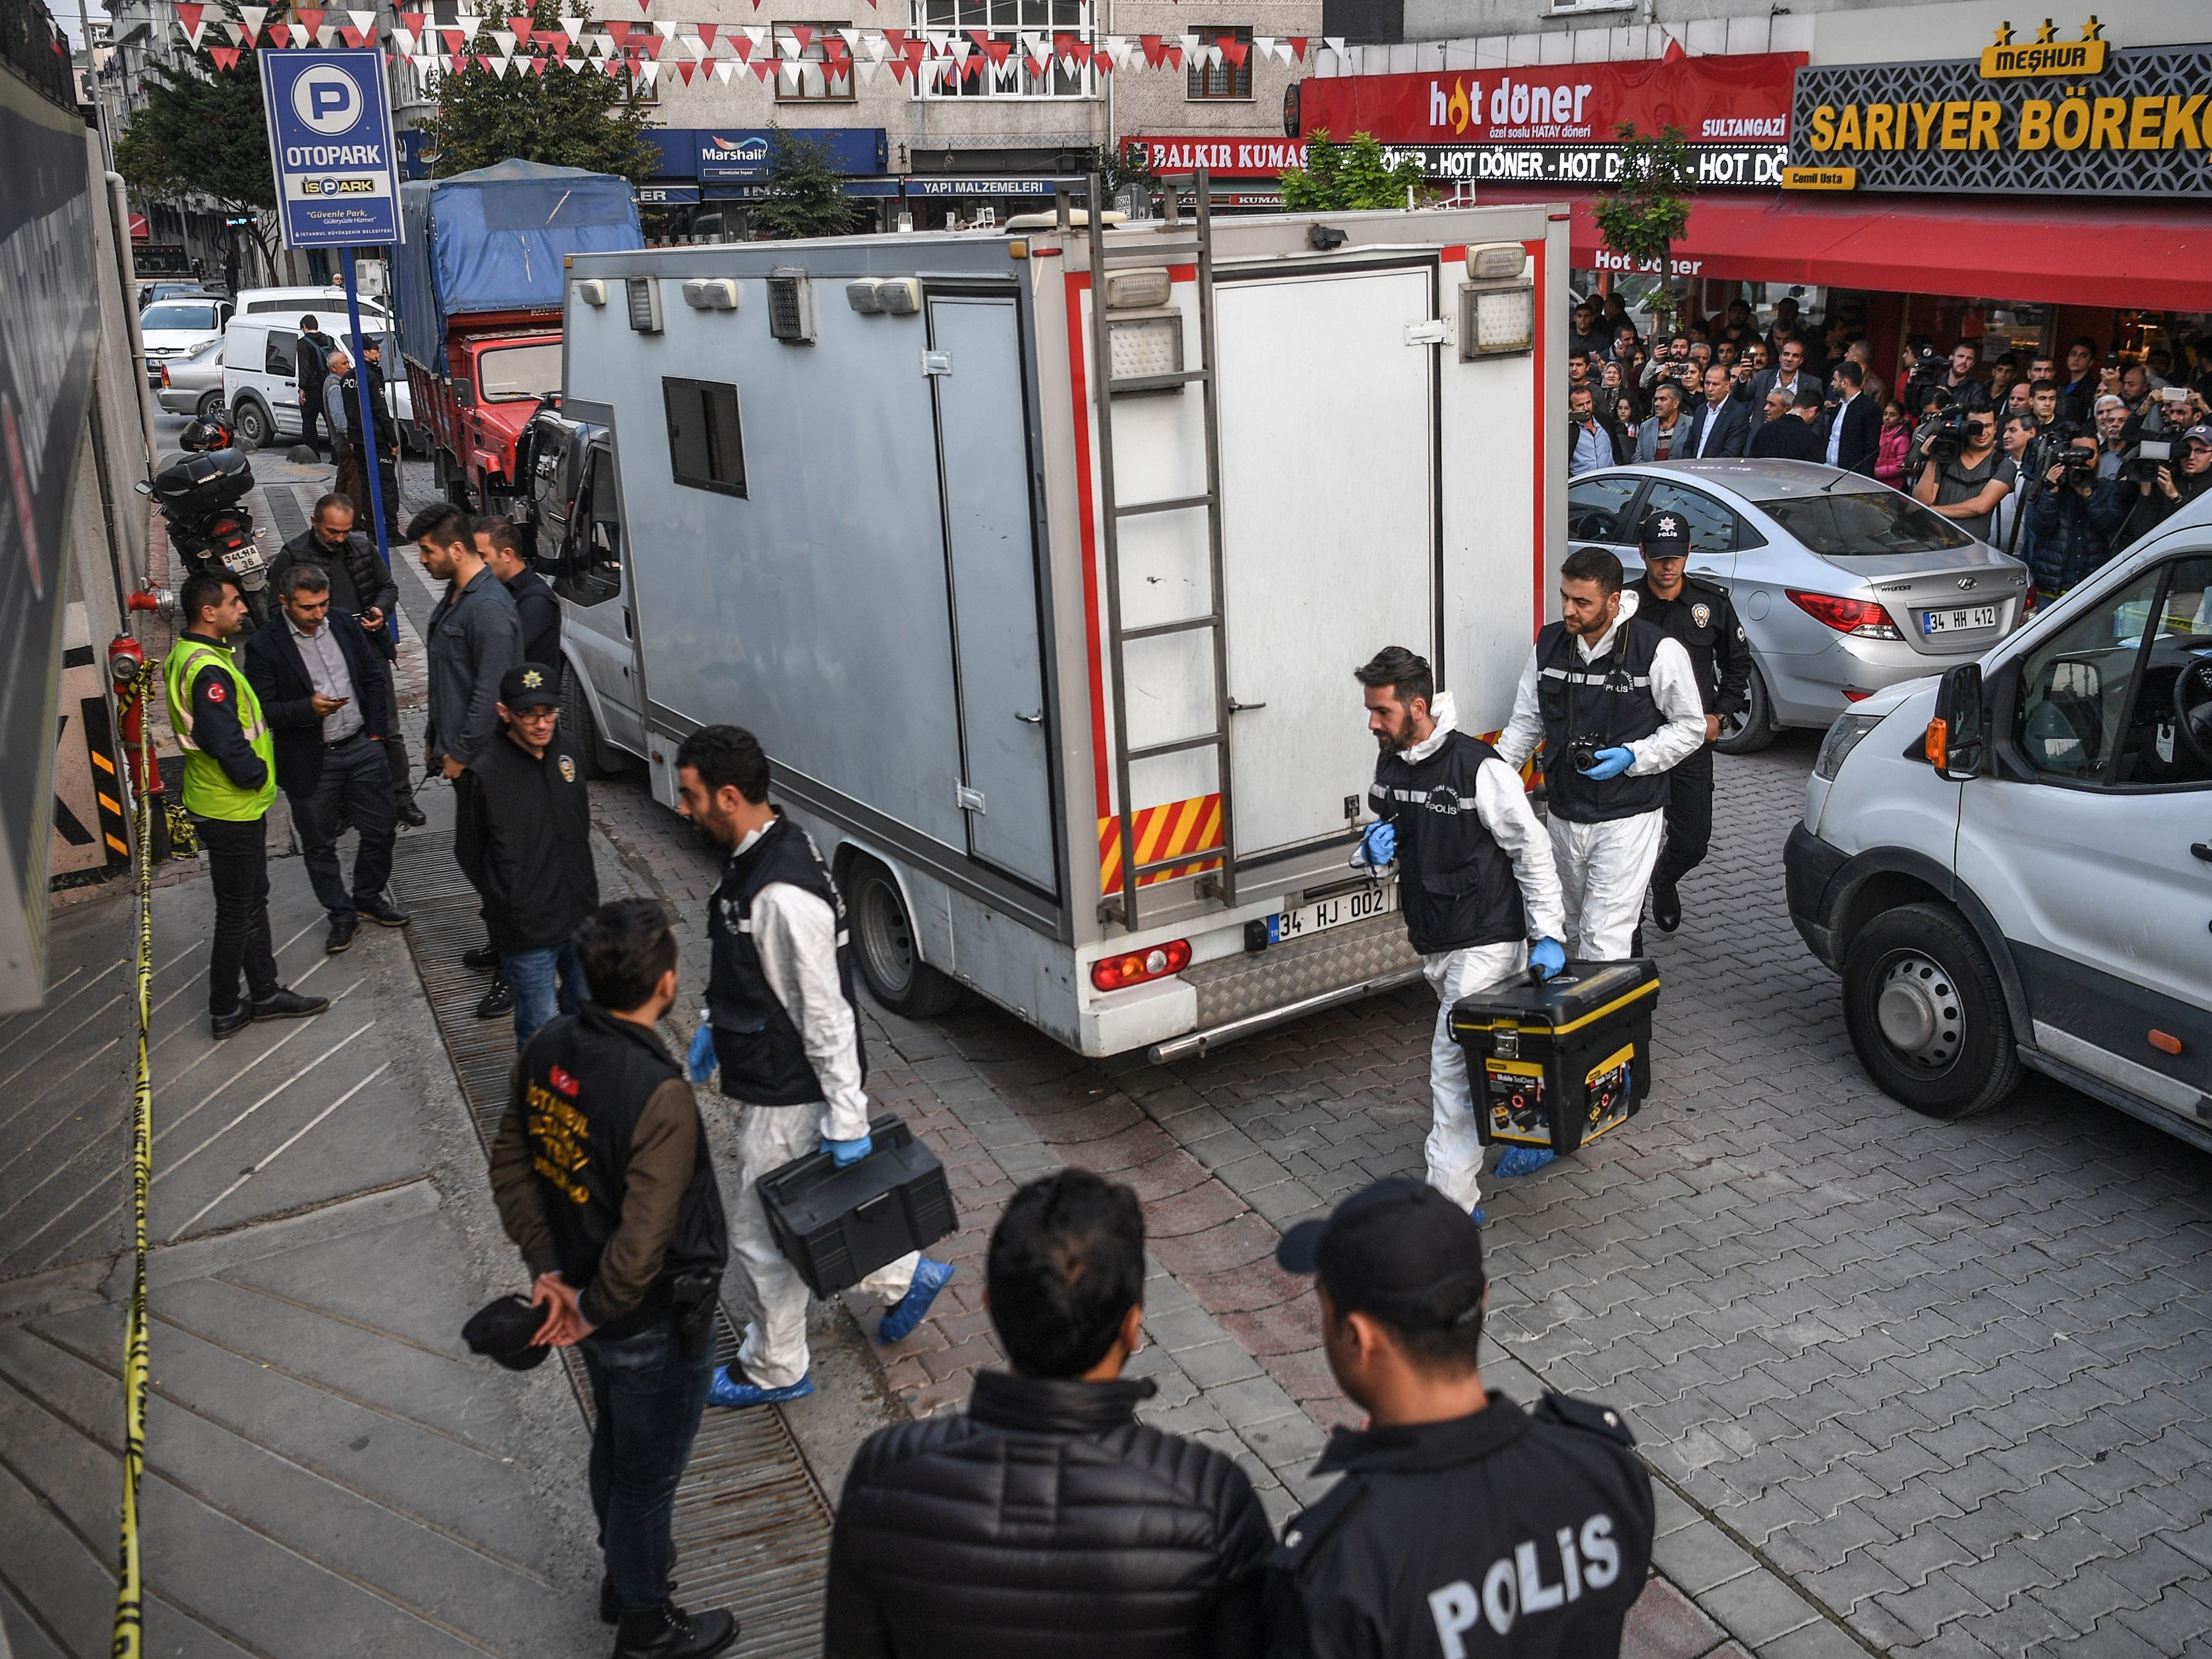 Turkish forensics arrive at an underground car park cordoned off by Turkish police, Oct. 22, 2018 in Istanbul, after they found an abandoned car belonging to the Saudi consulate, three weeks after the murder of journalist Jamal Khashoggi in the Saudi consulate.